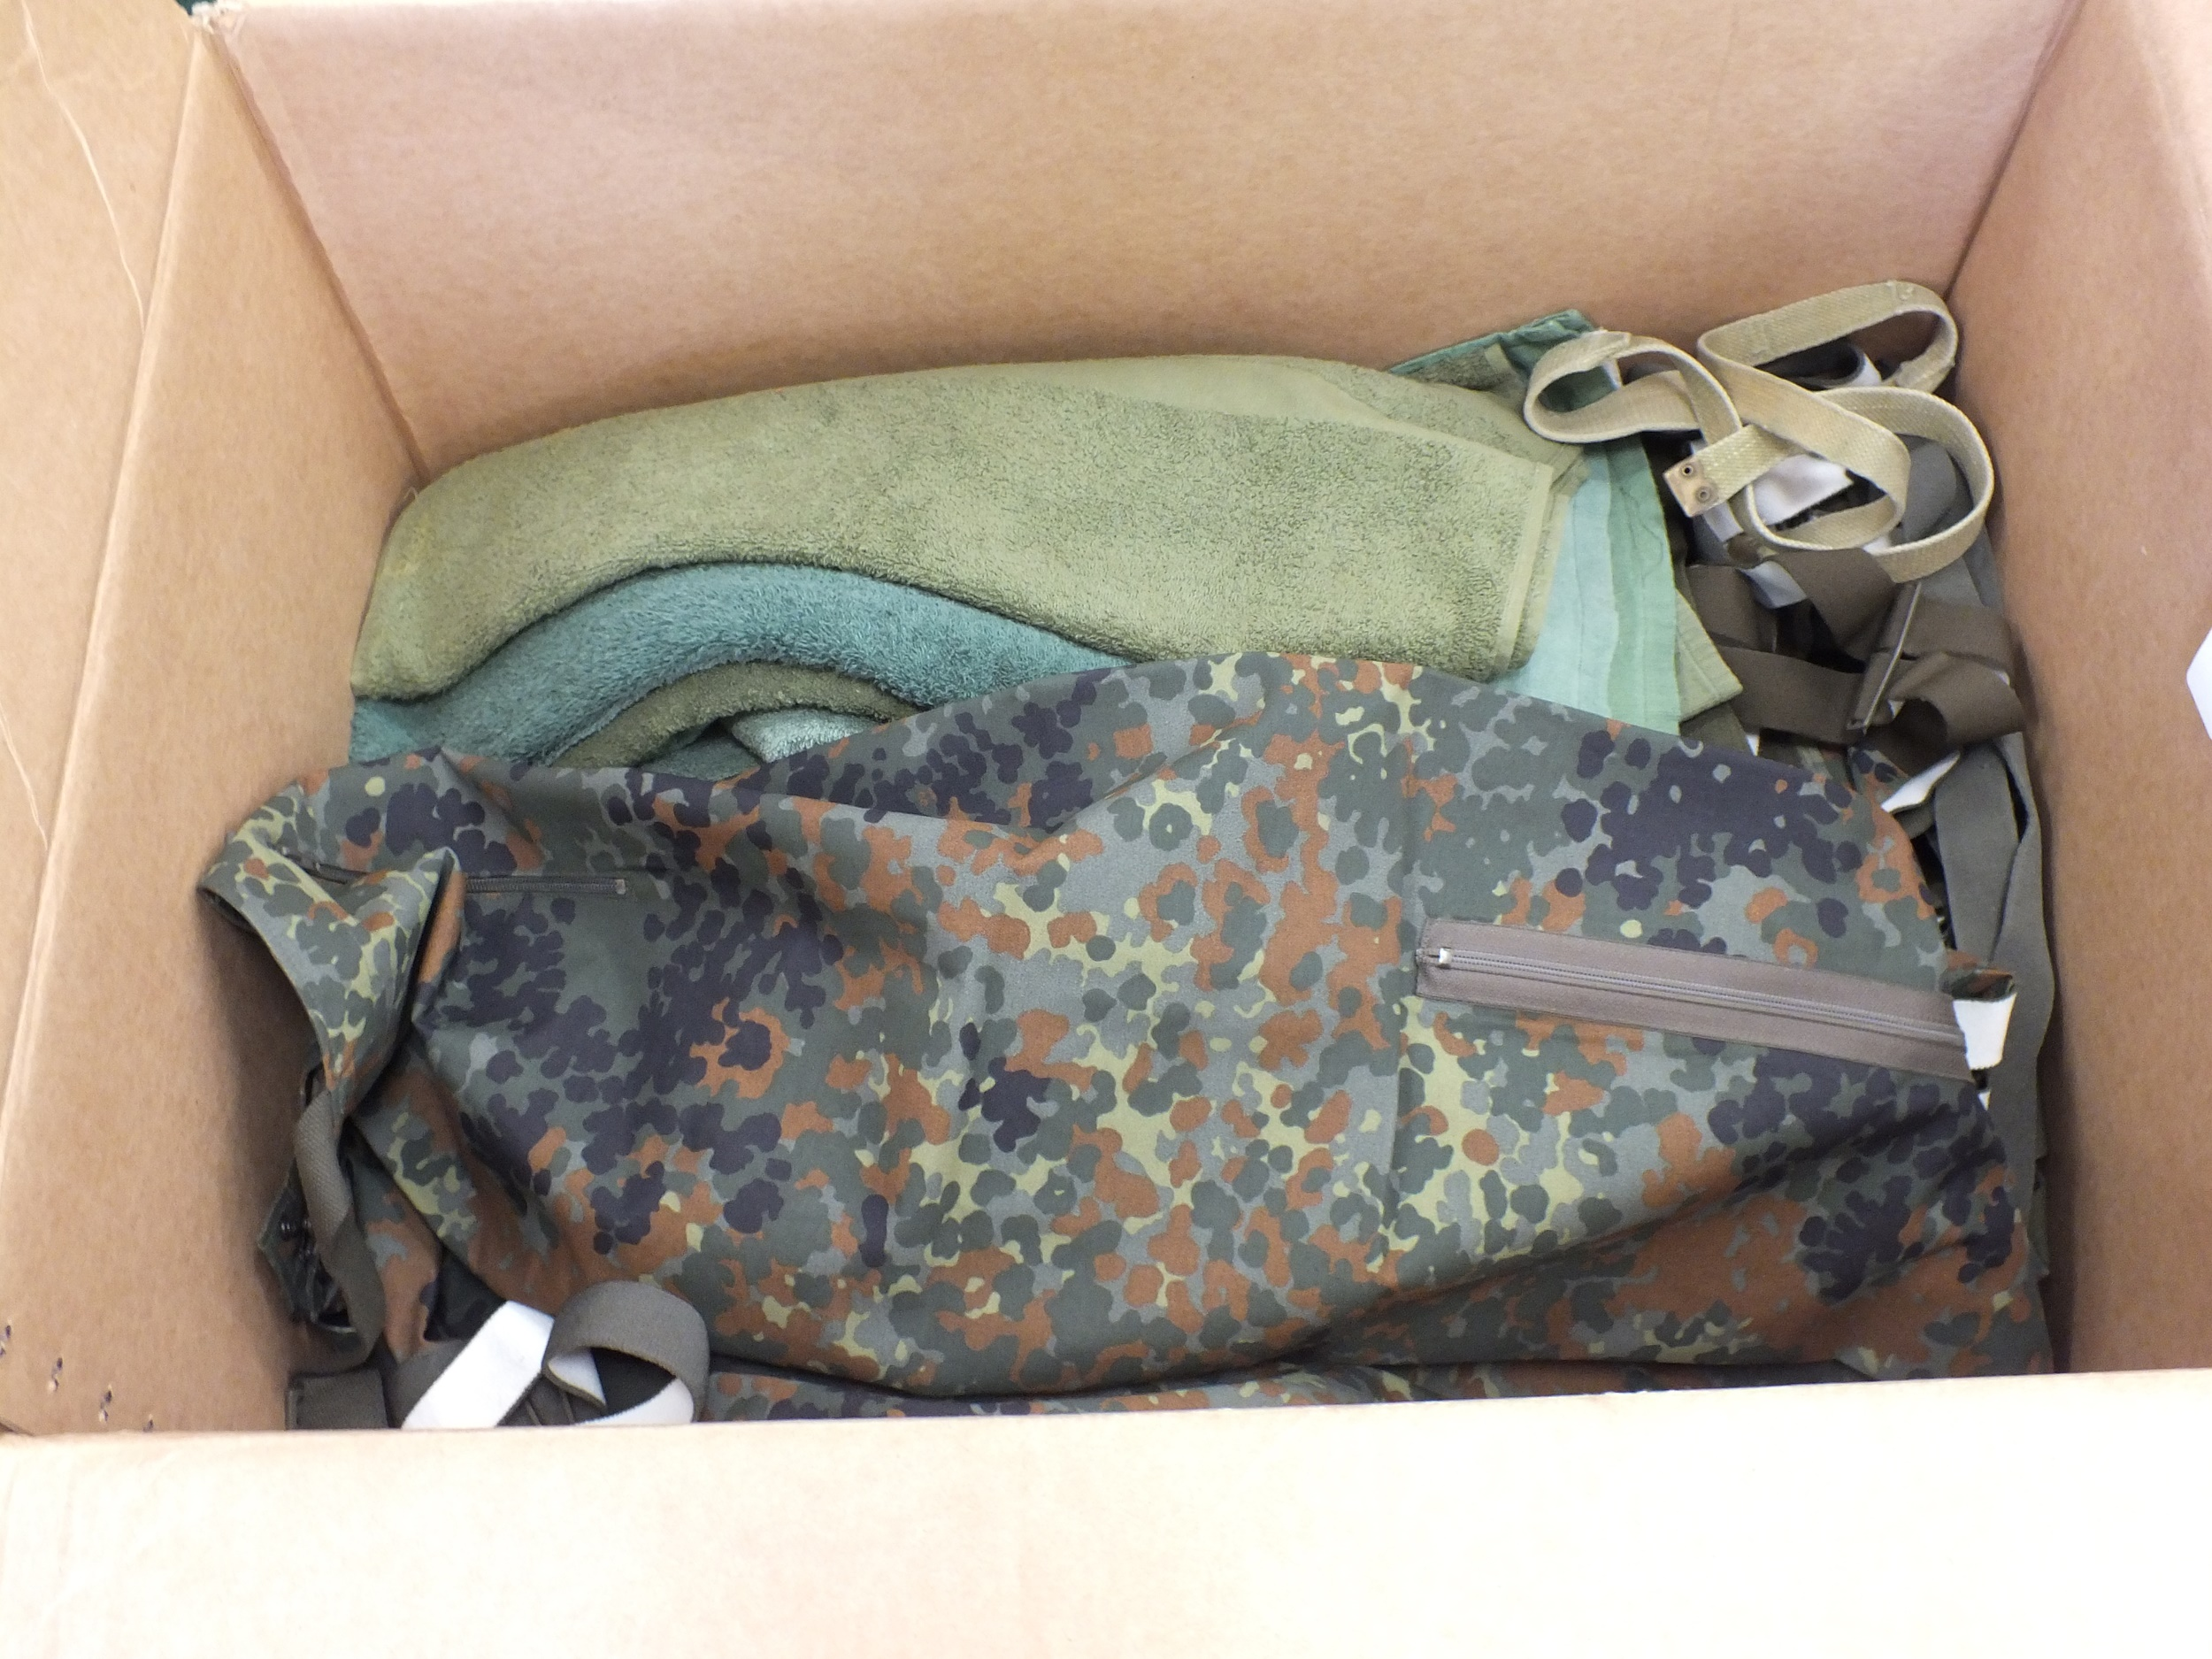 A collection including three military sleeping bags, military hand towels, numerous pairs of - Image 2 of 2